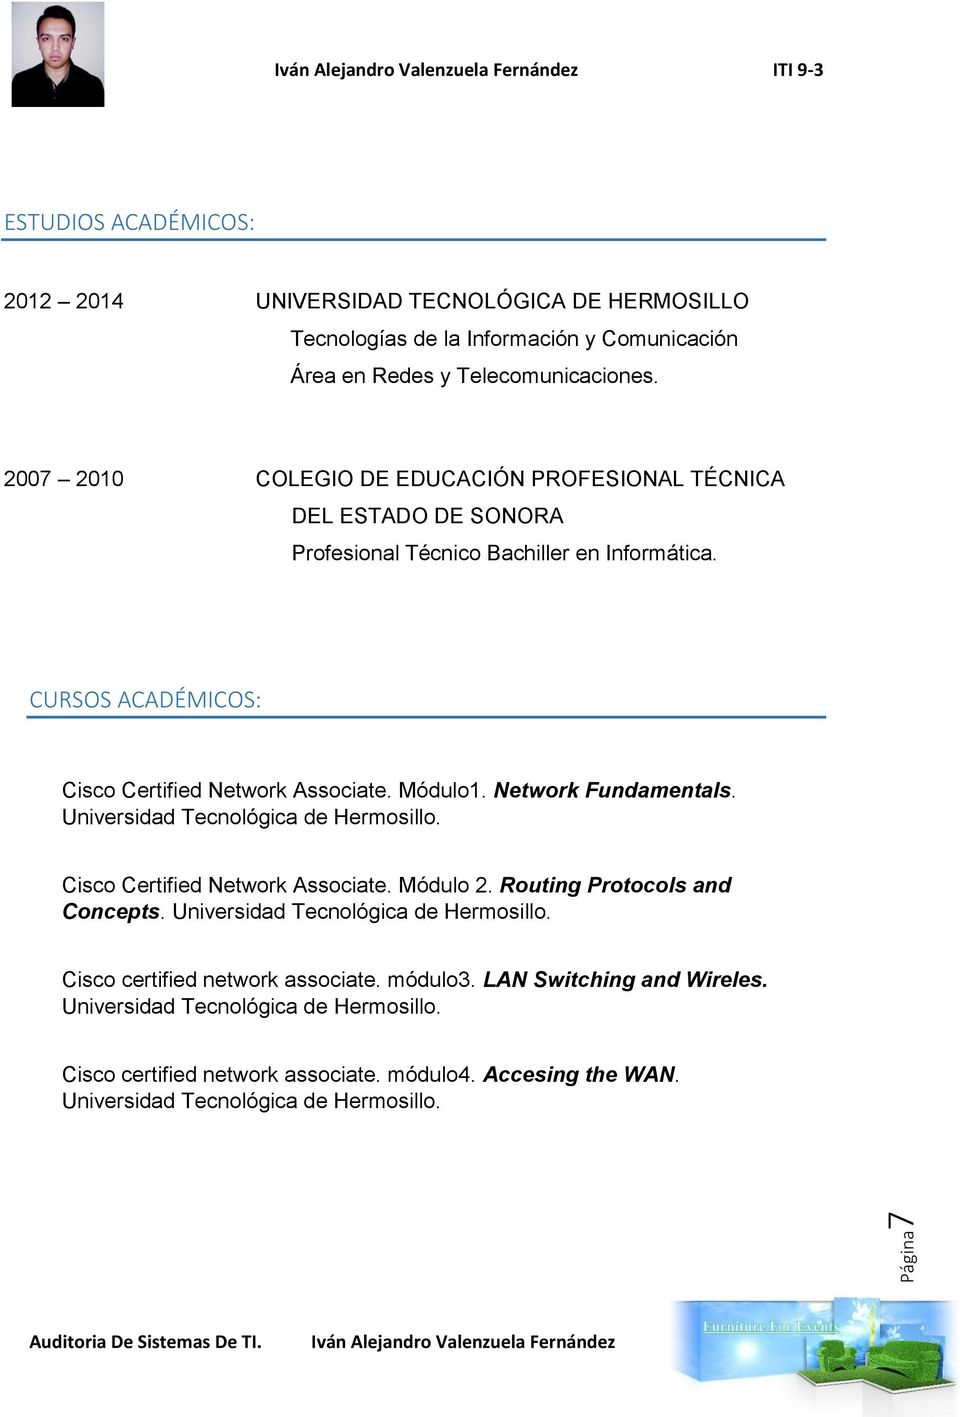 Network Fundamentals. Universidad Tecnológica de Hermosillo. Cisco Certified Network Associate. Módulo 2. Routing Protocols and Concepts. Universidad Tecnológica de Hermosillo. Cisco certified network associate.